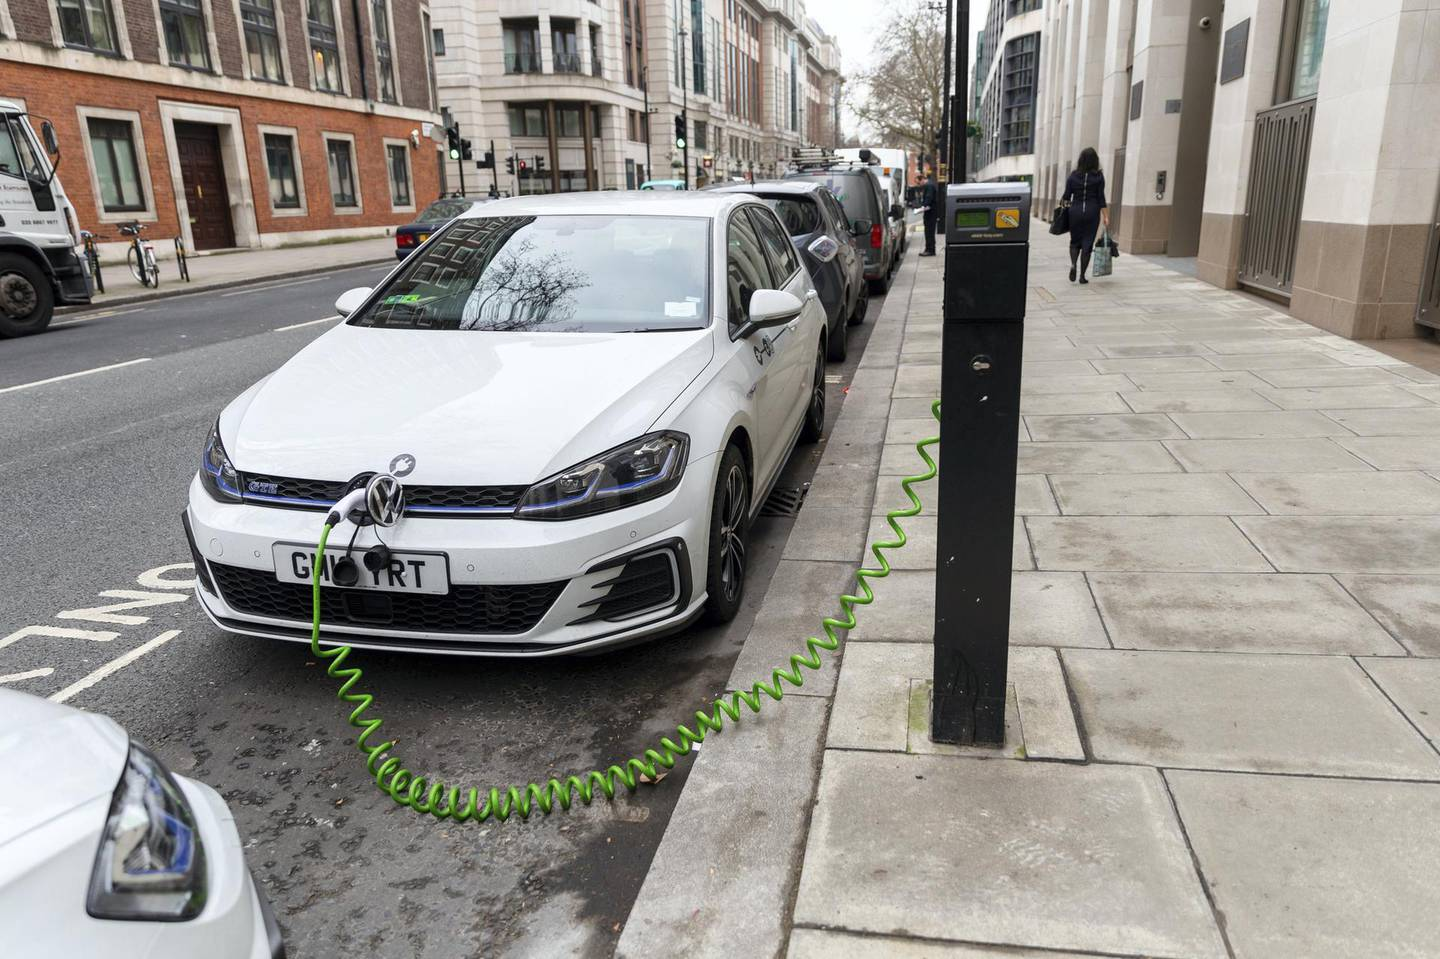 An electric car is seen charging at a charging point on the street in Westminster, central London, UK on January 11, 2019 (photo by Vickie Flores/In Pictures via Getty Images Images)